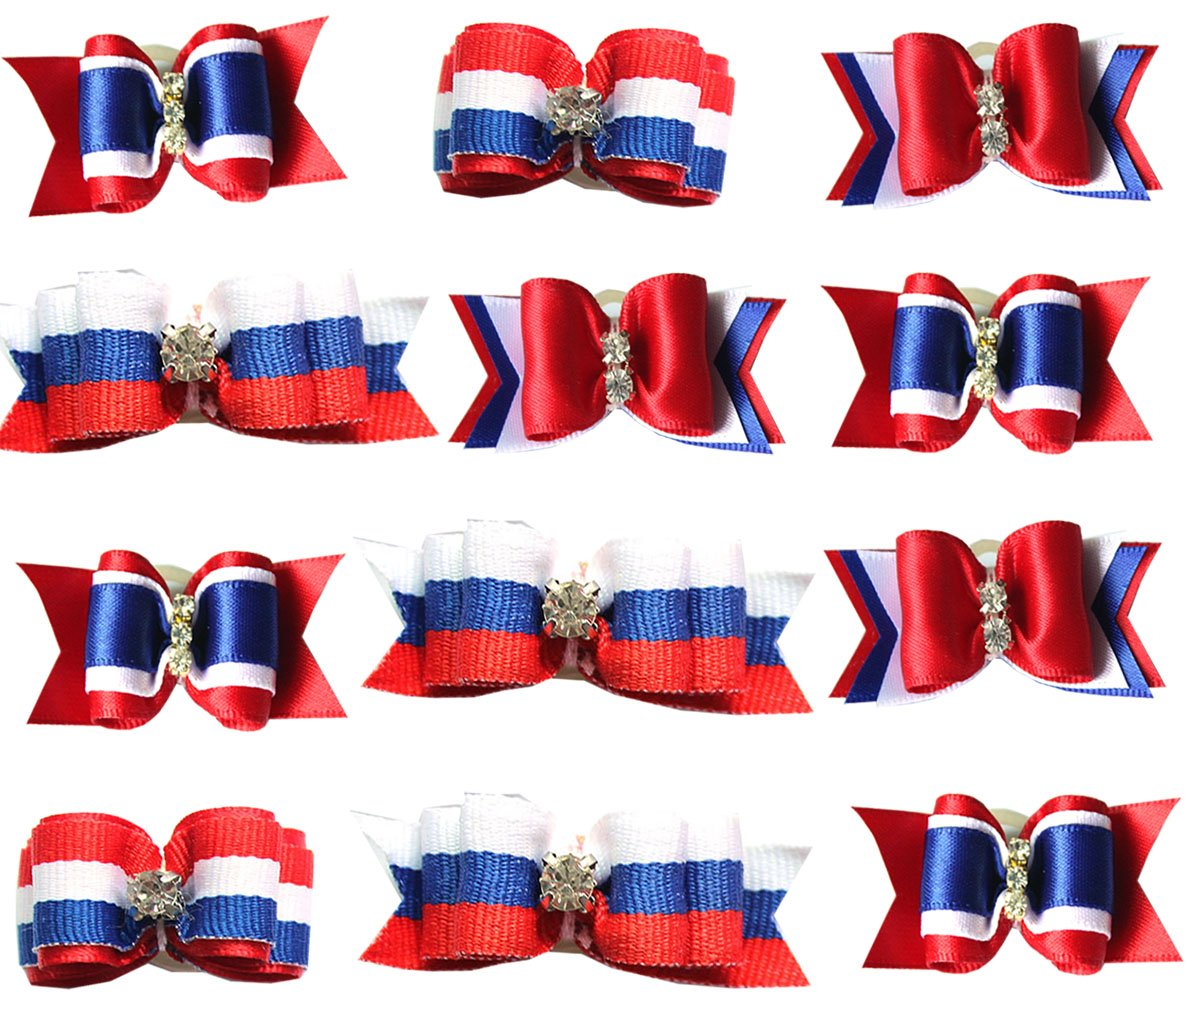 Yagopet 20pcs/10pairs US Independence Day Dog Hair Bows Rubber Bands the fourth of July Small Bowknot Pet Grooming Products Accessories